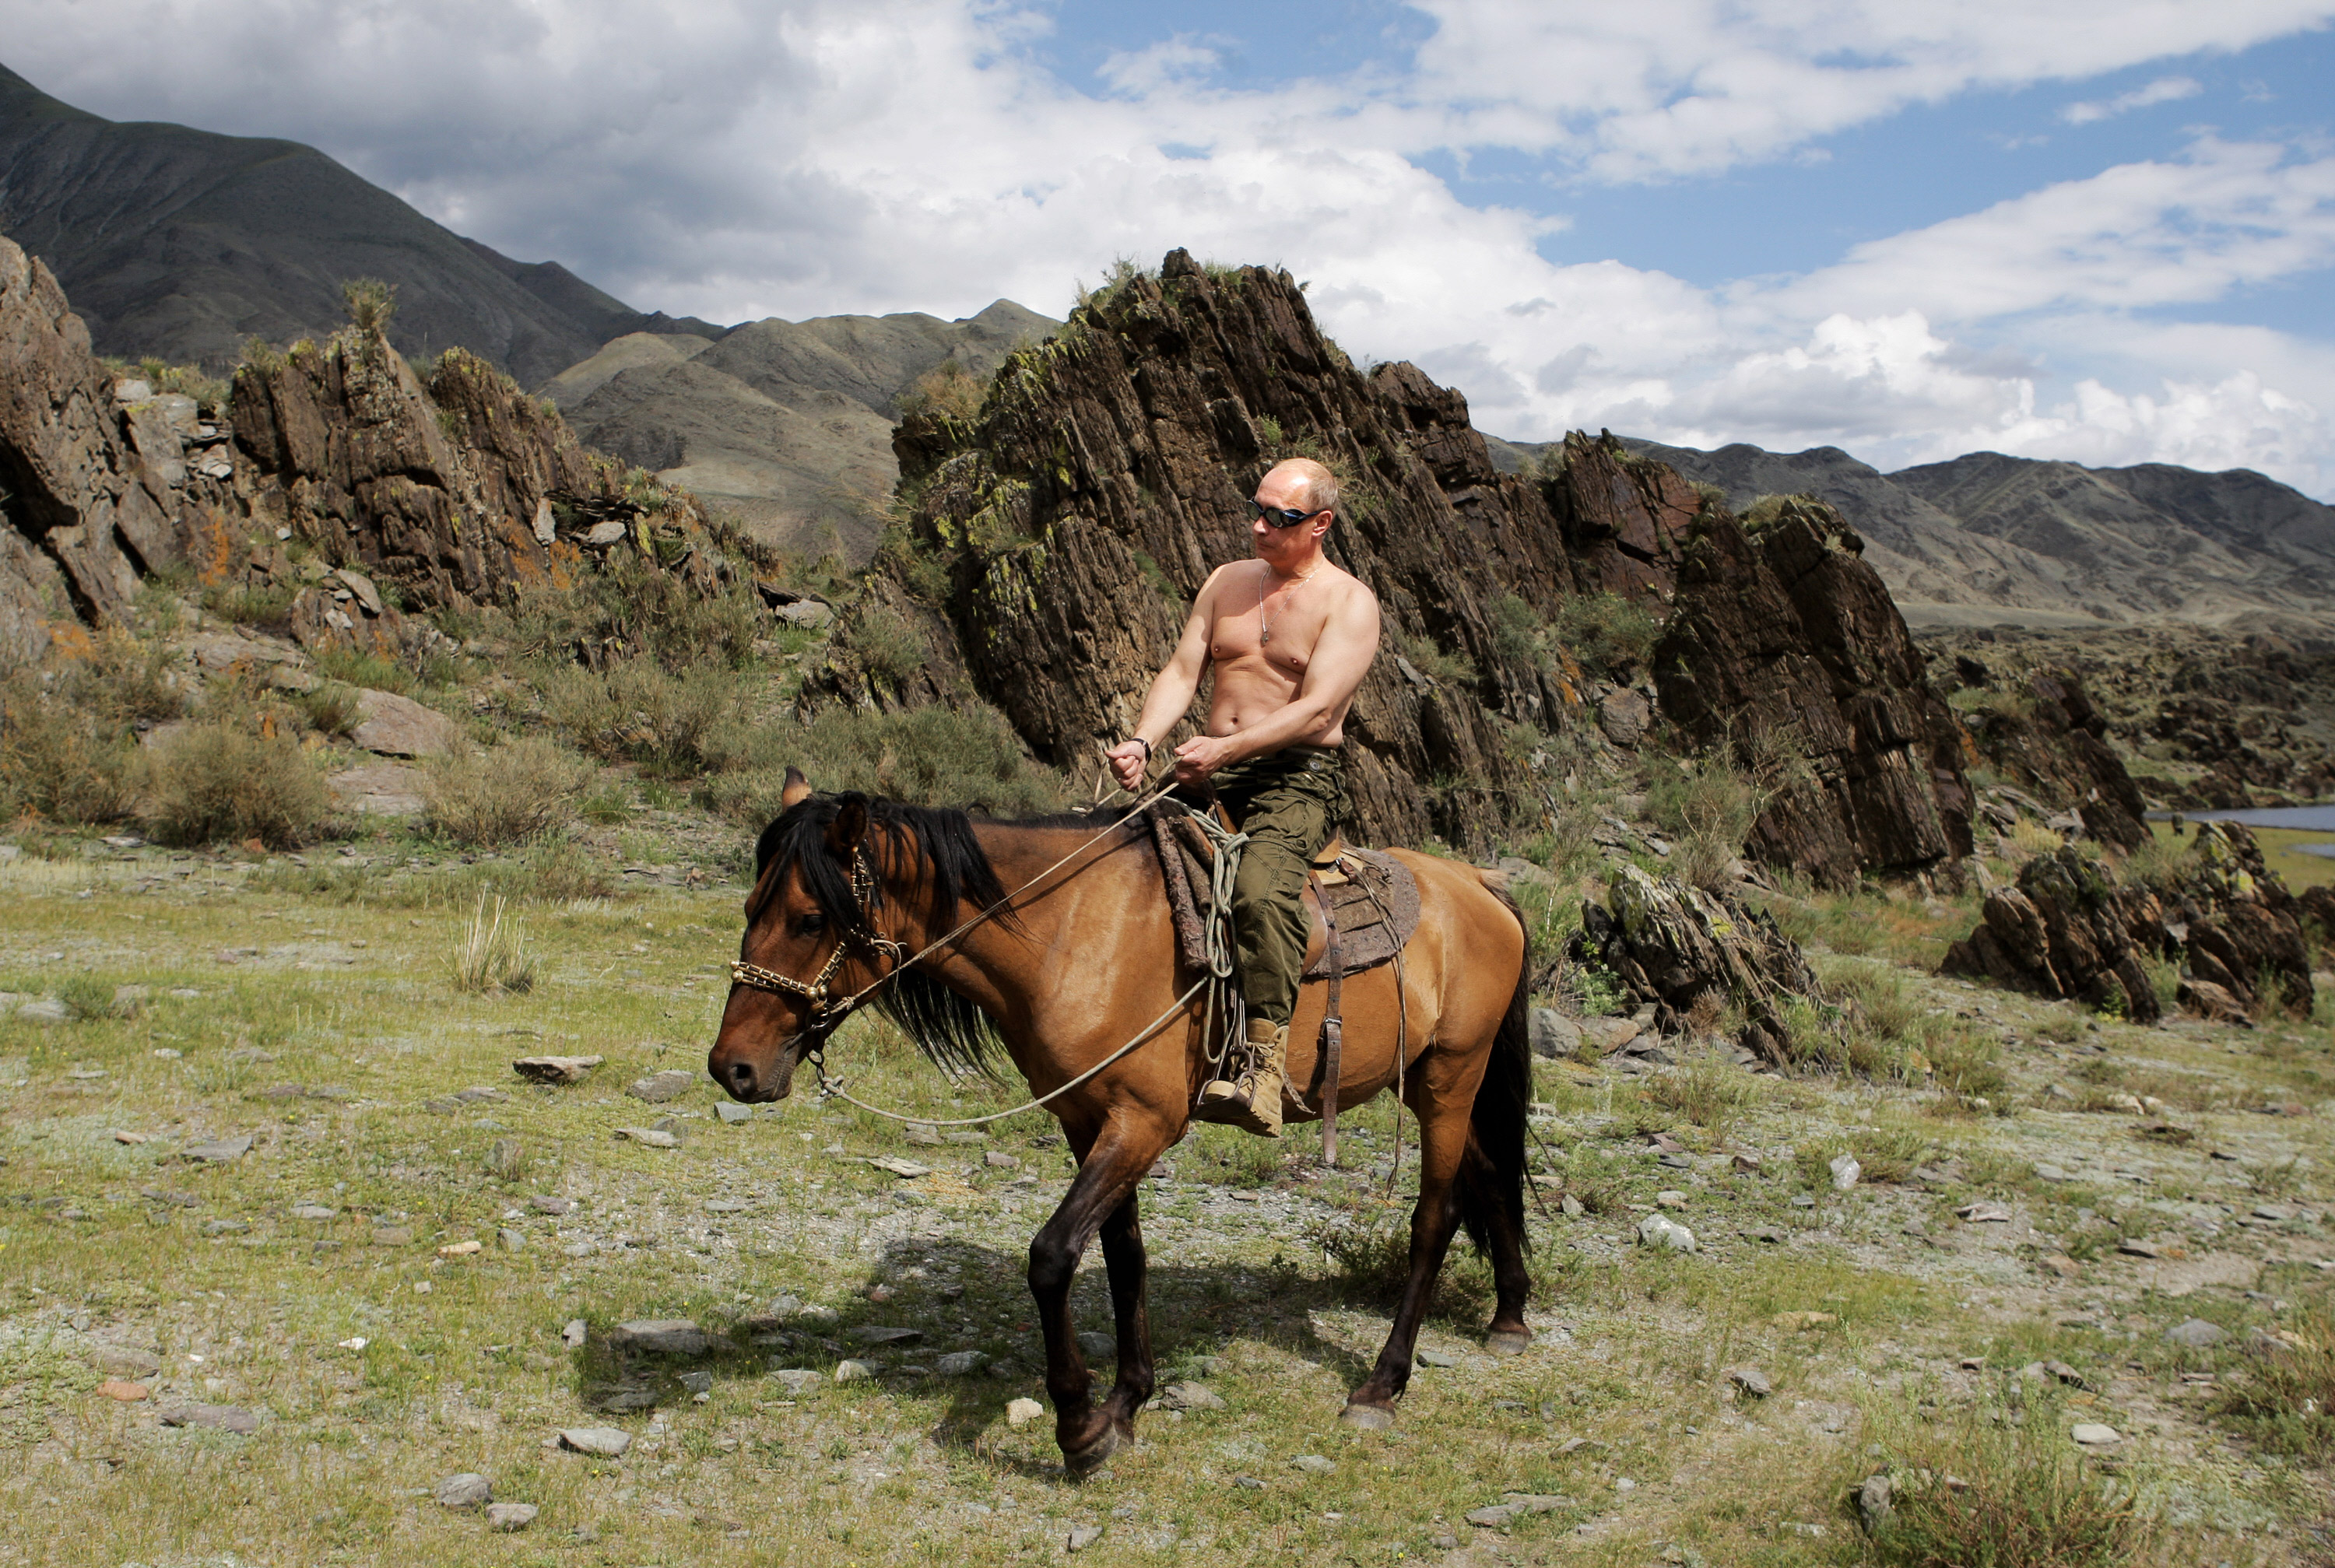 19-vladimir-putin-shirtless-horse.jpg